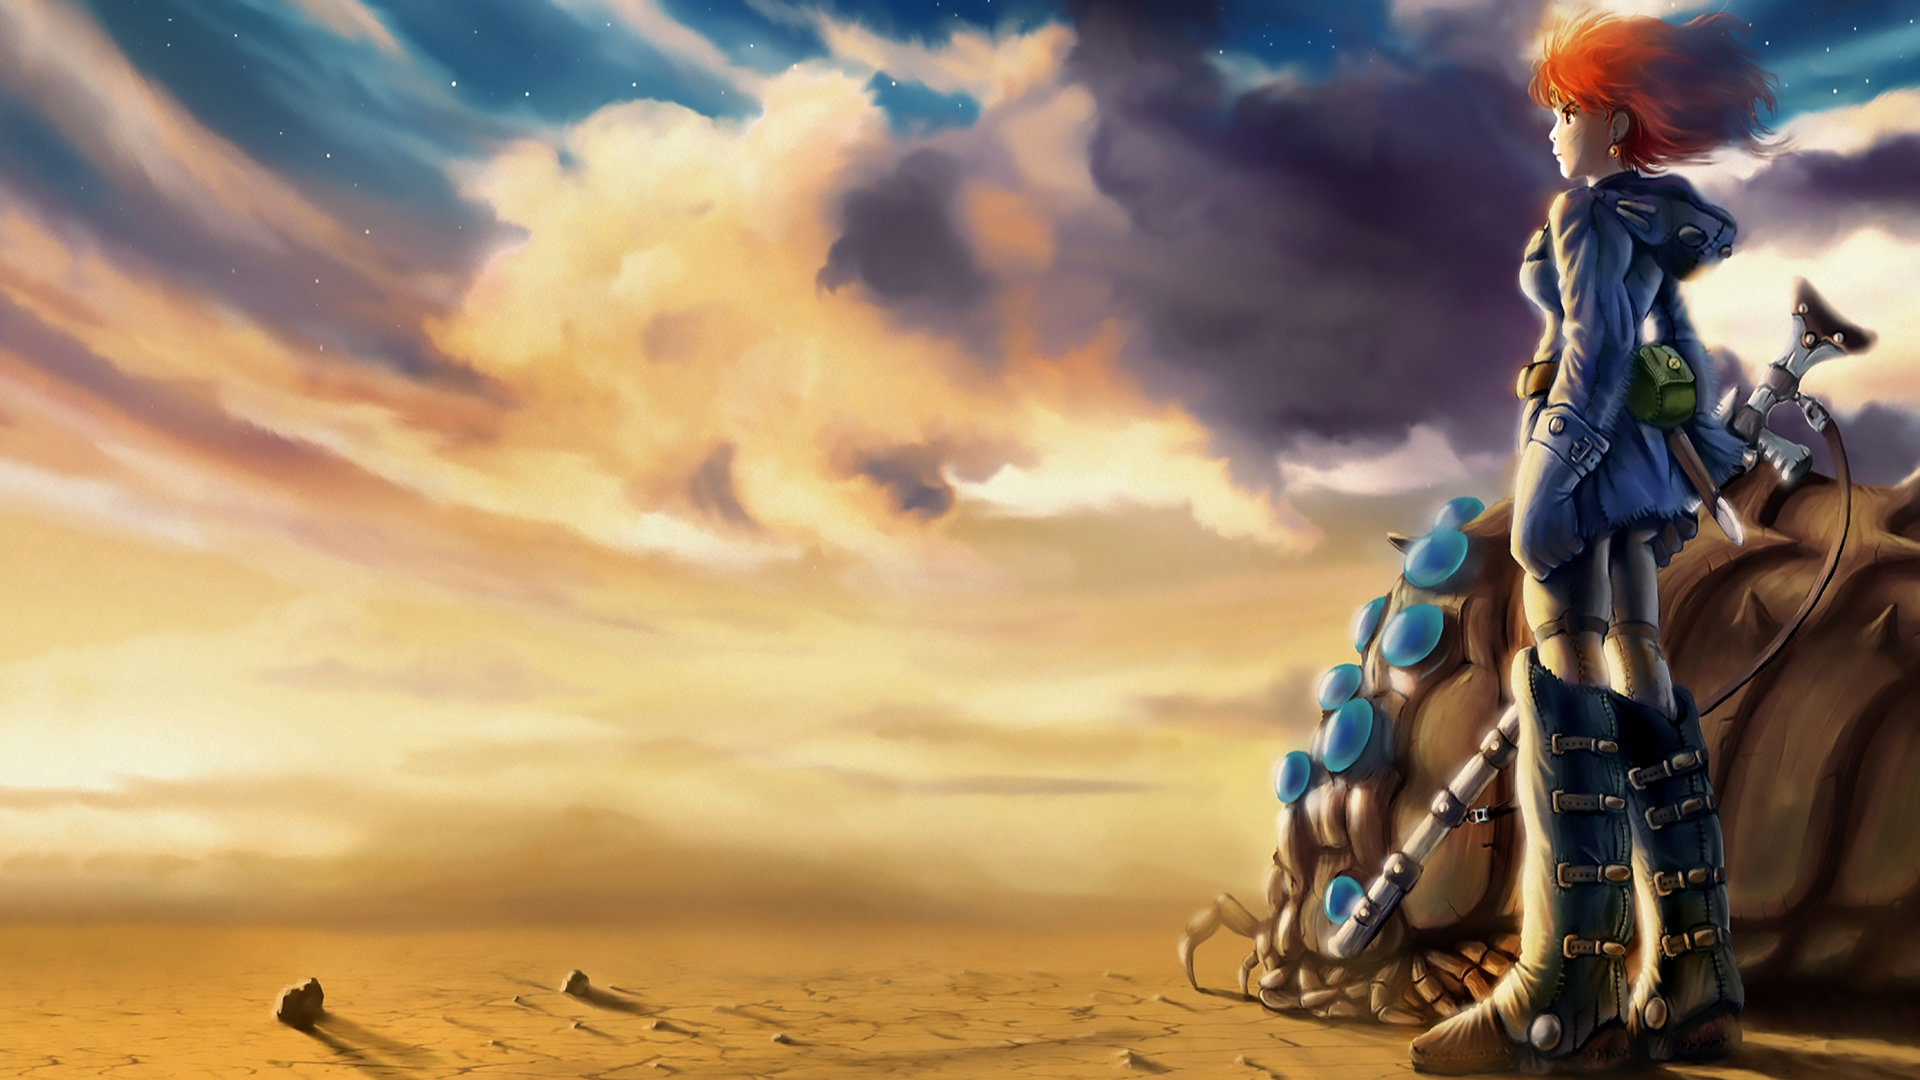 High resolution Nausicaa Of The Valley Of The Wind hd 1920x1080 wallpaper ID:315379 for desktop